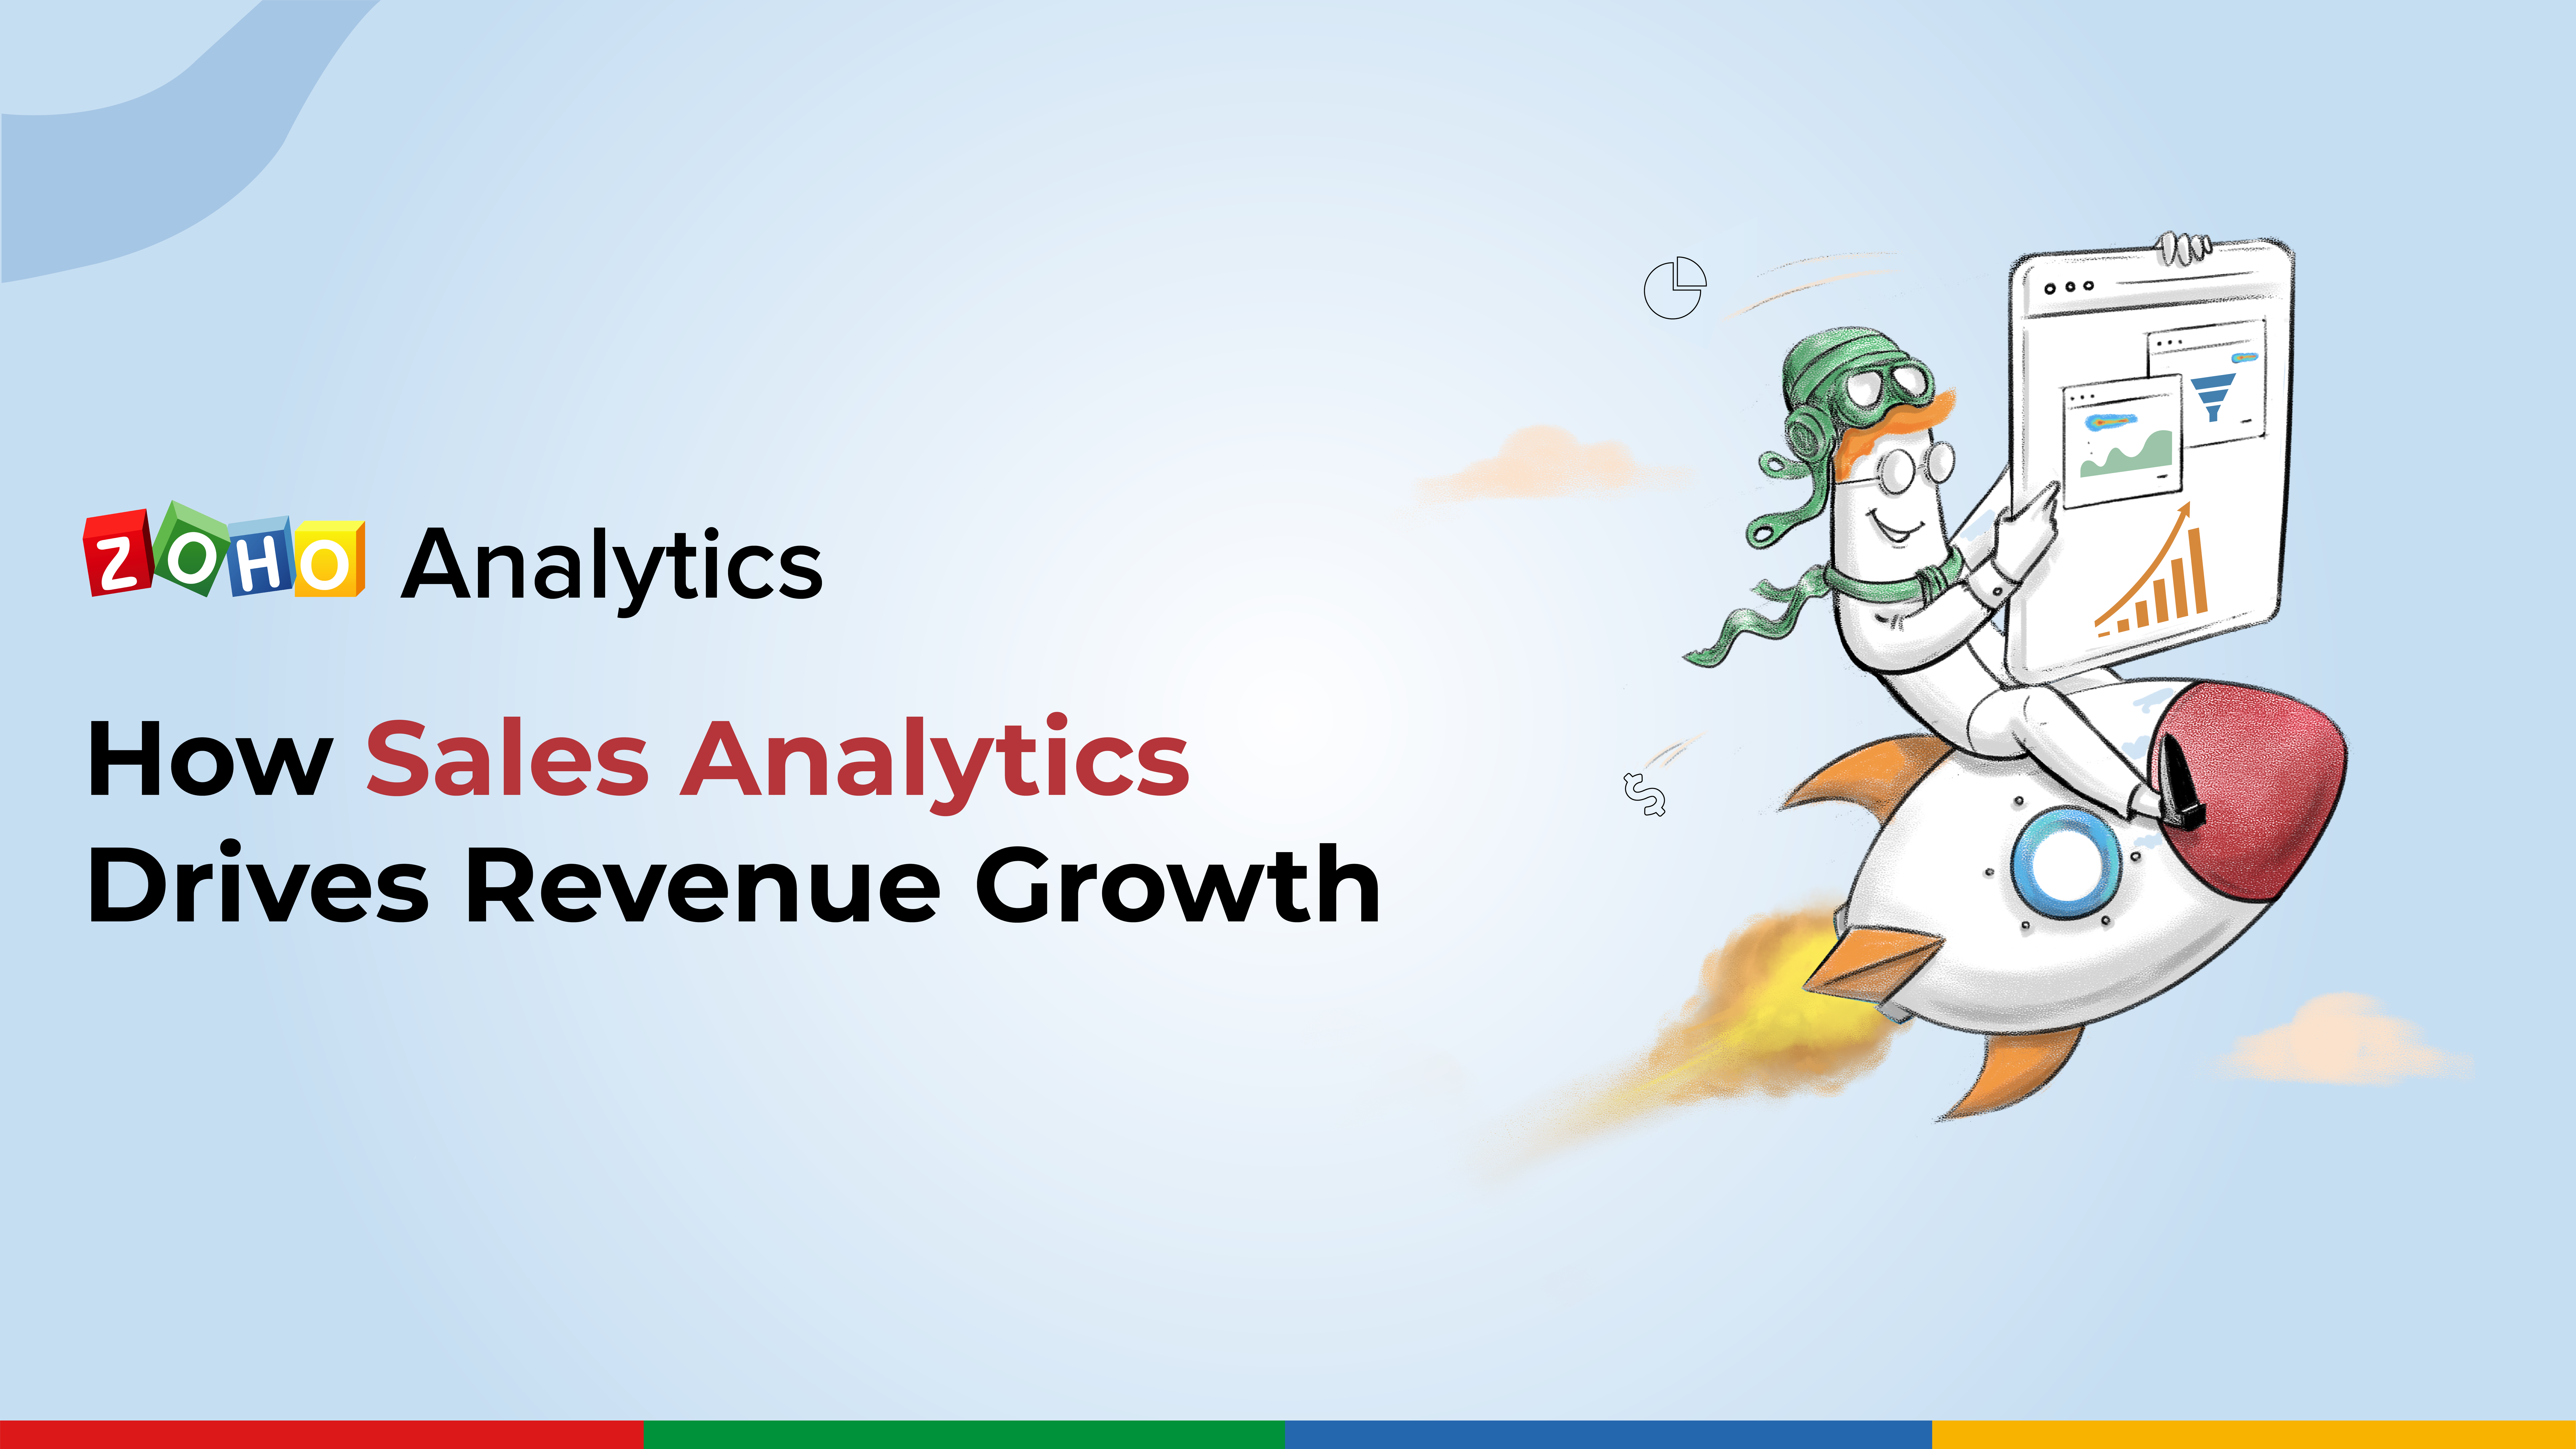 How Sales Analytics drives revenue growth